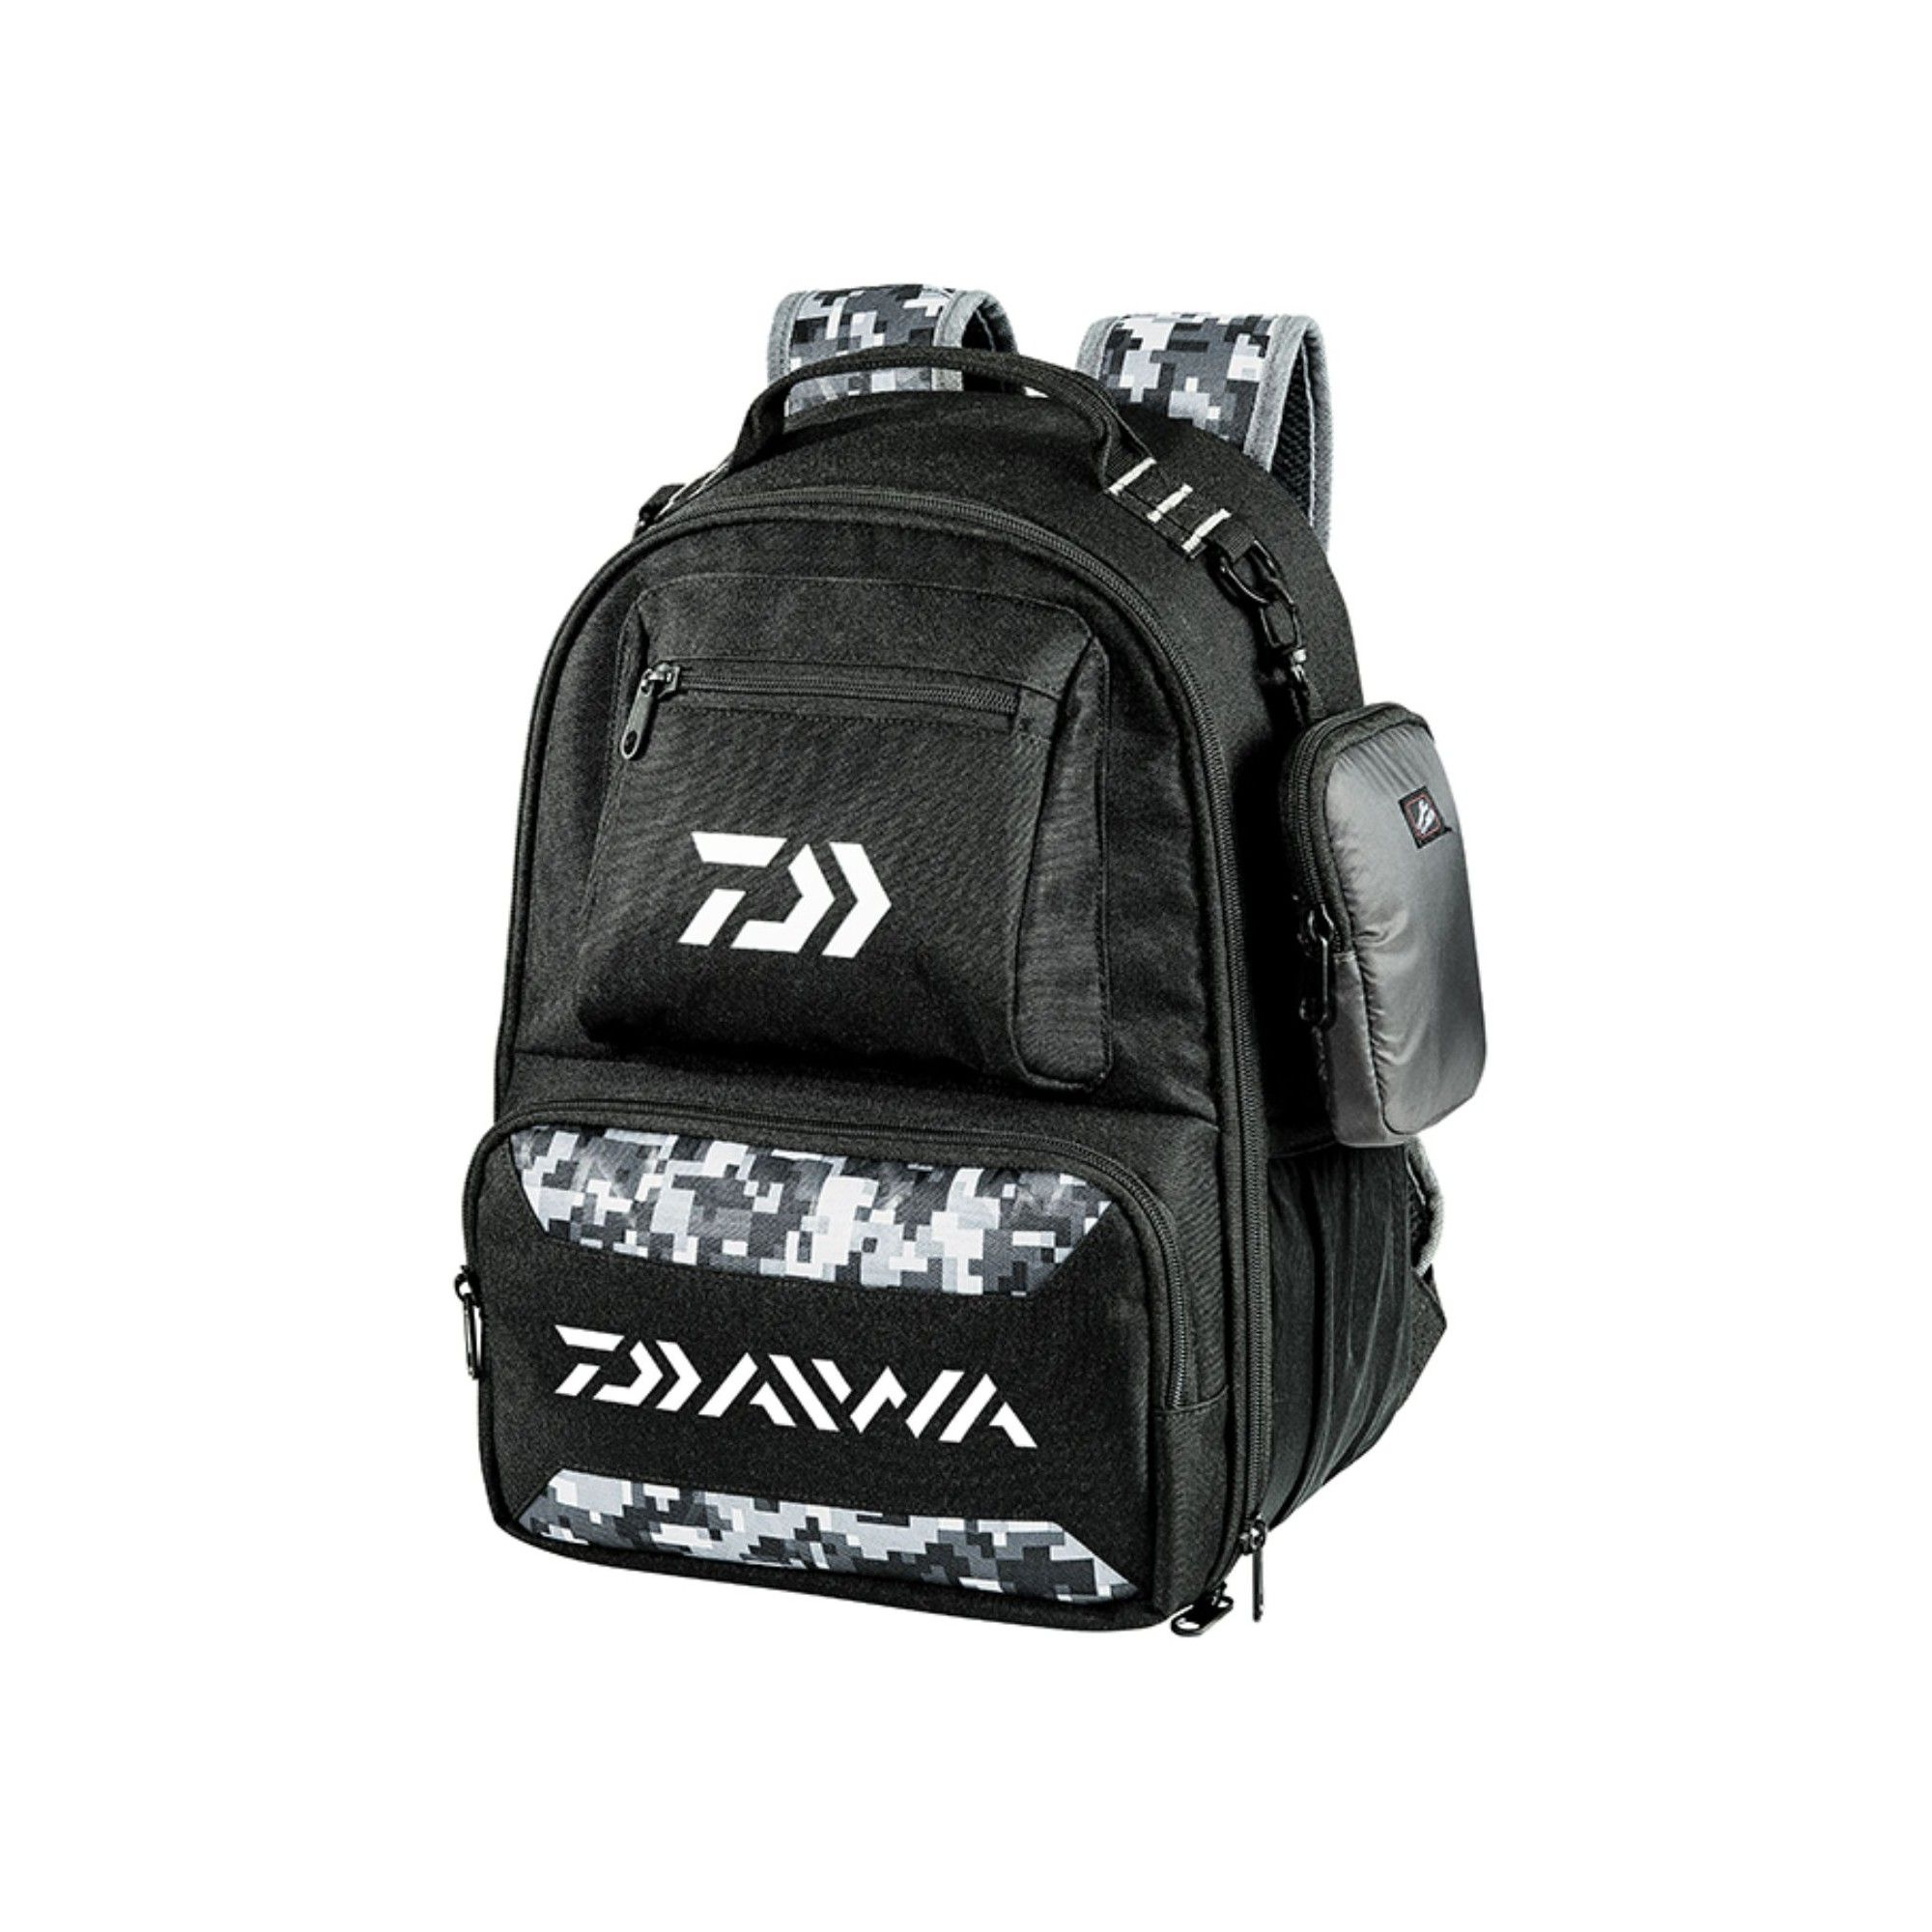 Daiwa Traveler Reel Case Backpack BRAND NEW